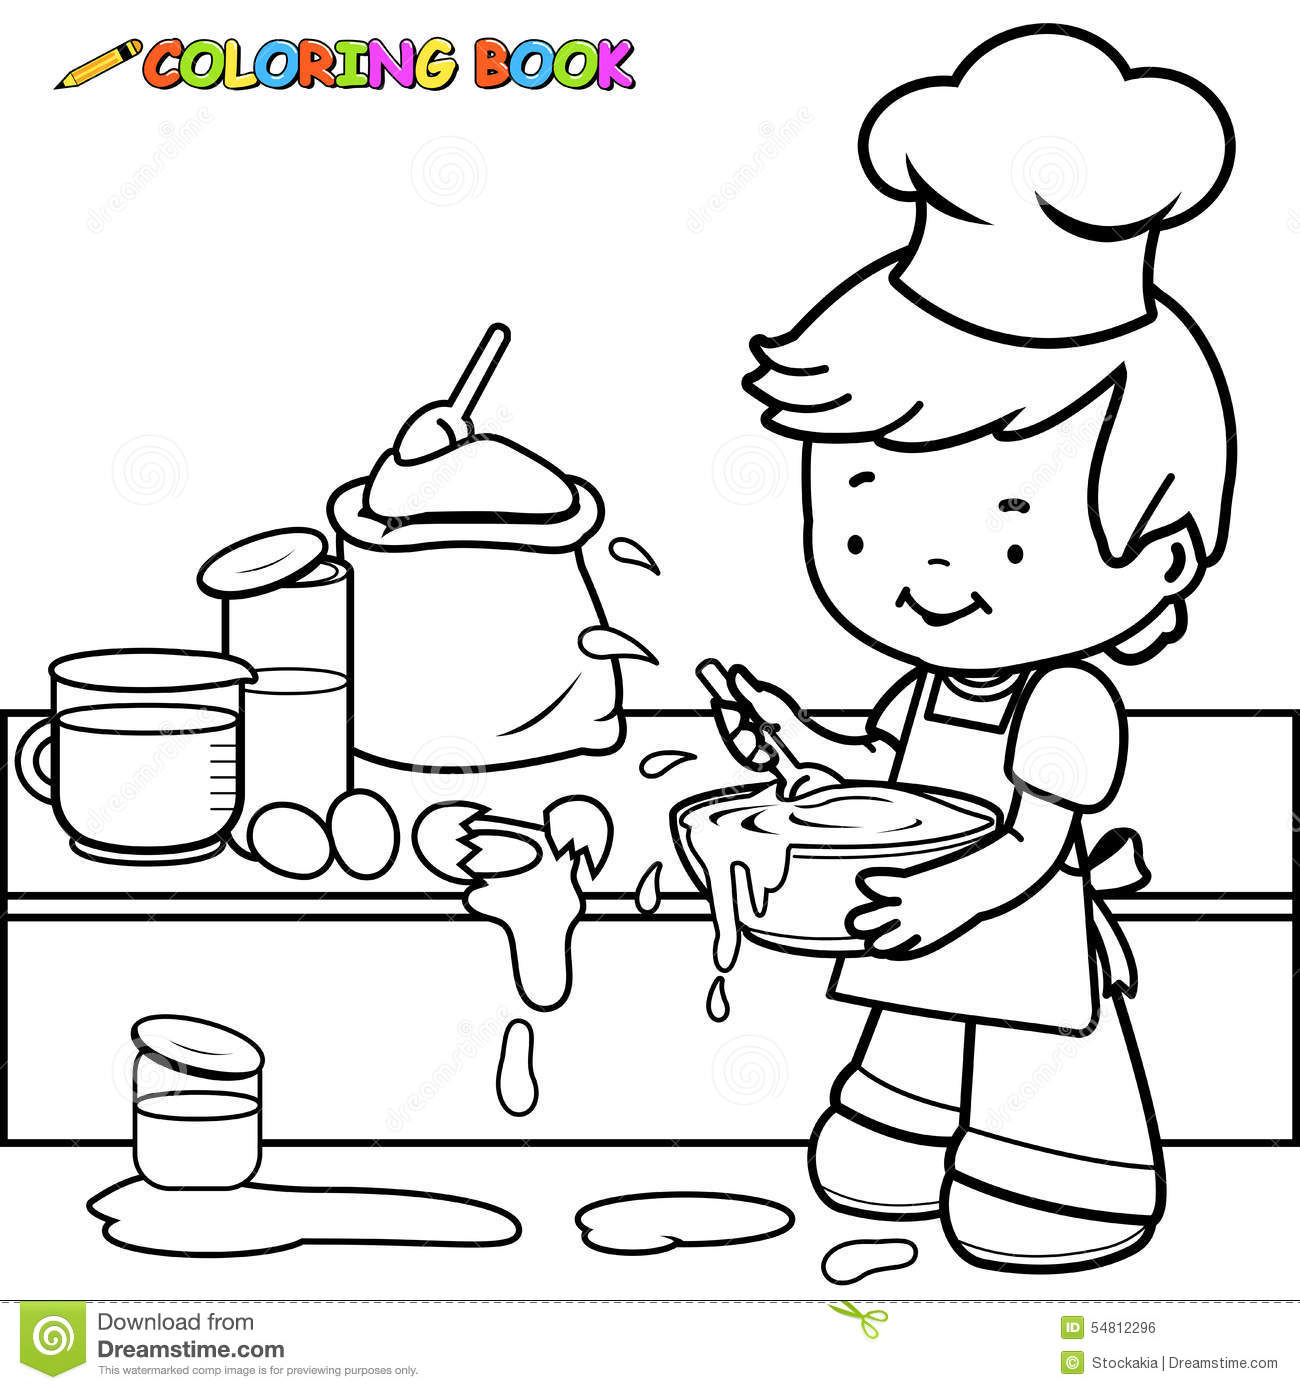 Stock Illustration Boy Cooking Making Mess Coloring Page Vector Illustration Black White Outline Image Little Kitchen Image54812296 on Healthy Food Coloring Page